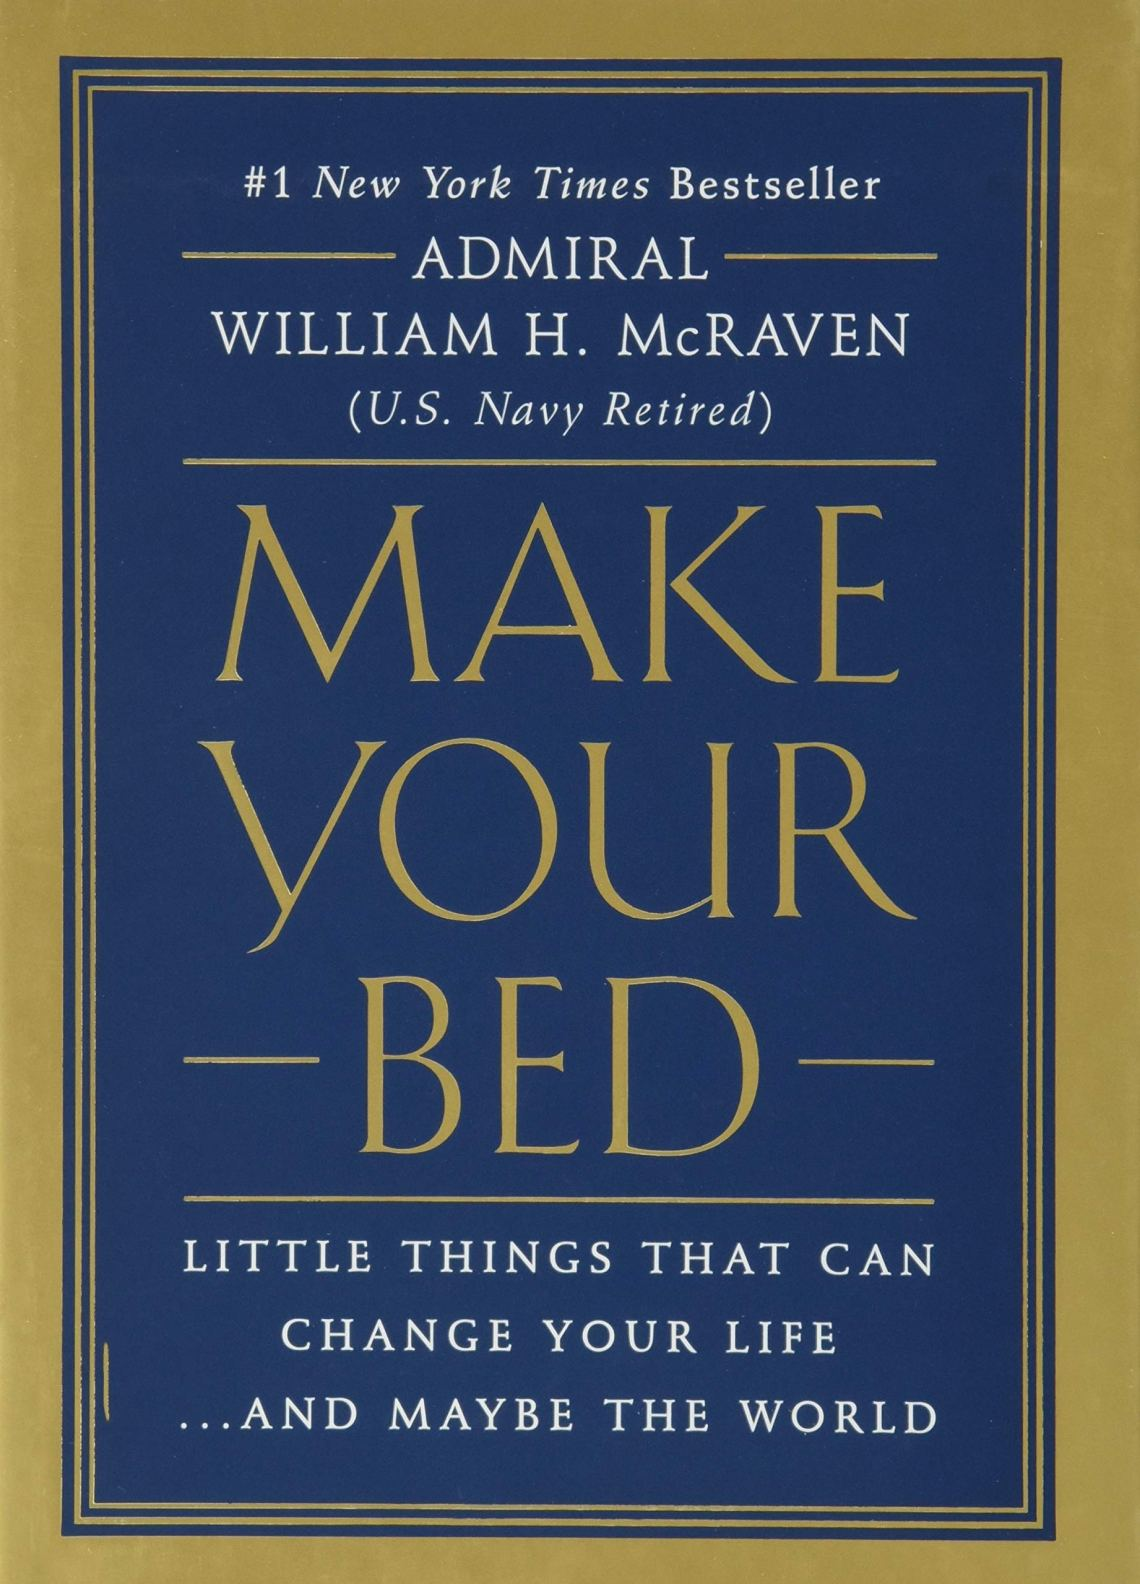 Make your bed one of self improvement books